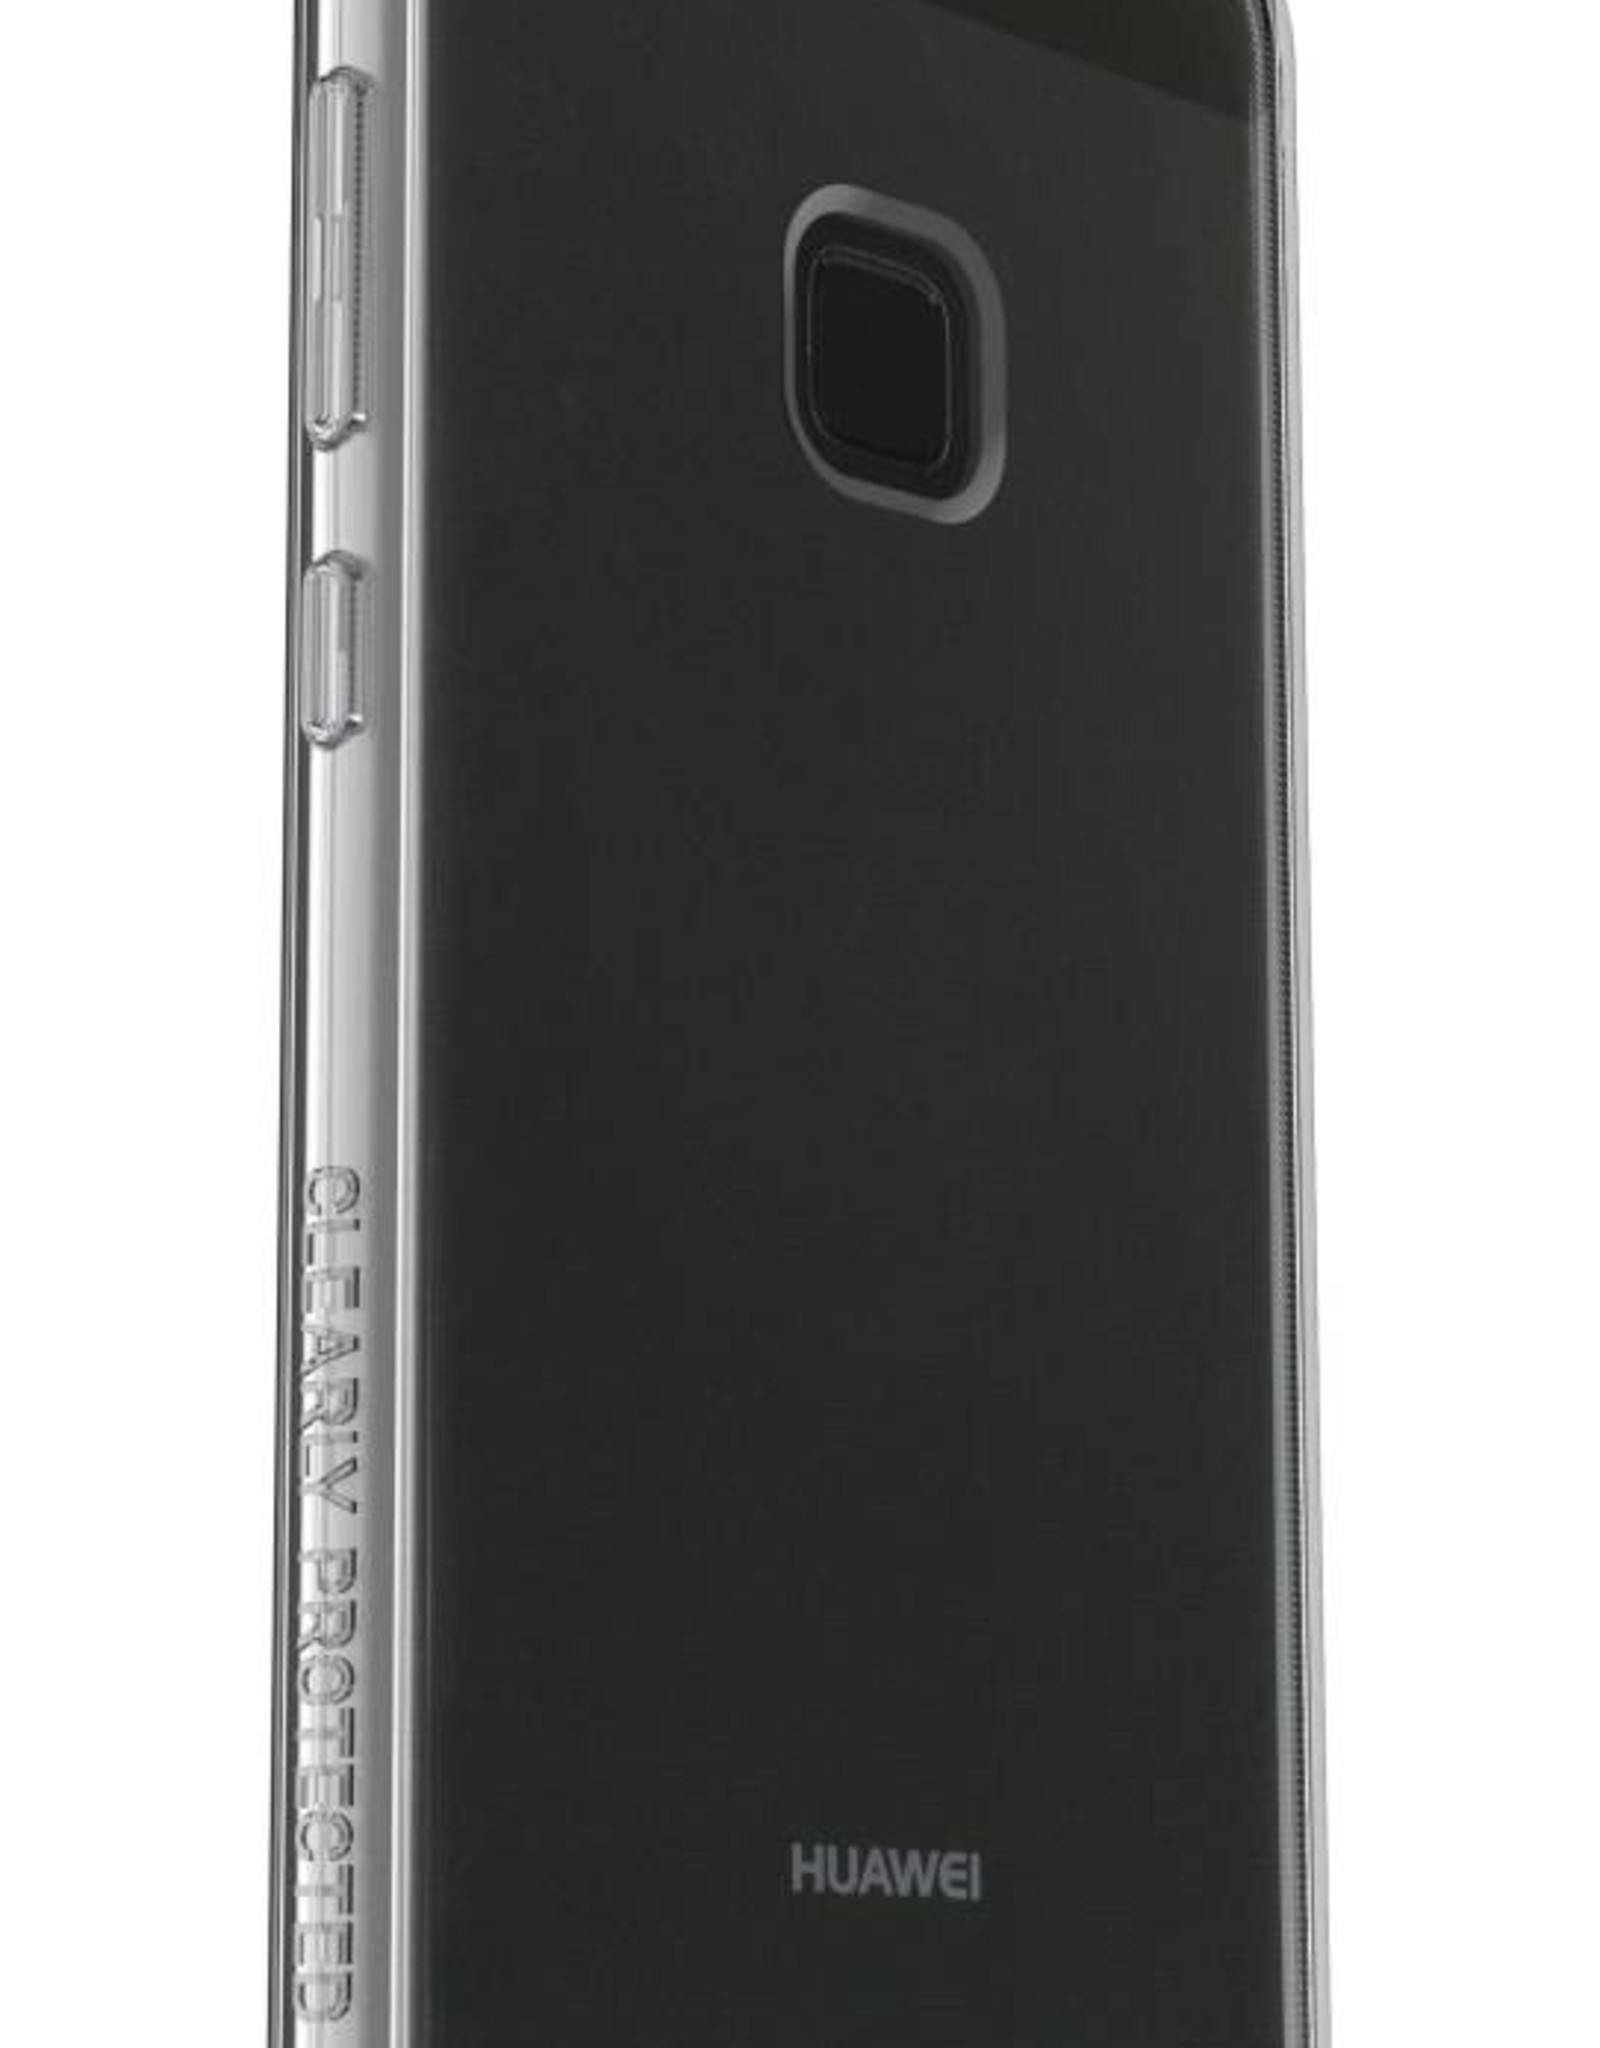 Otterbox OtterBox | Huawei P10 Clearly Protected Clear | 112-9303